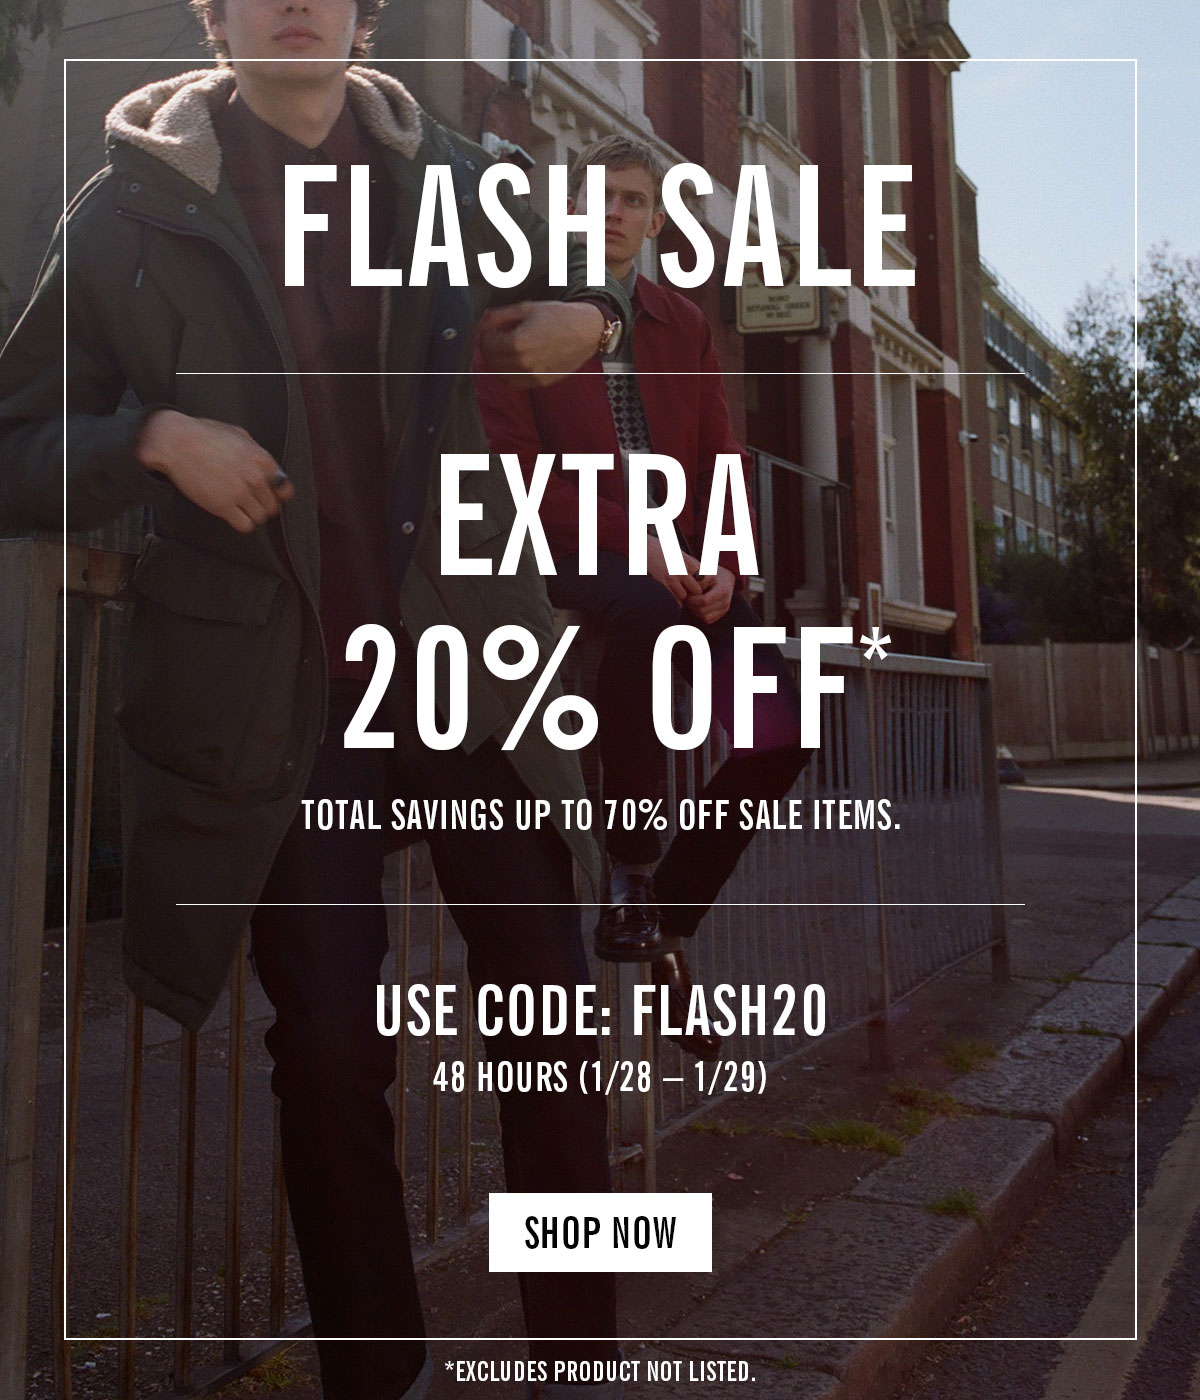 Flash Sale | Extra 20% Off | Total savings up to 70% off sale items. | Use Code: FLASH20 | 48 Hours (1/28 through 1/29) | Shop Now | Excludes products not listed